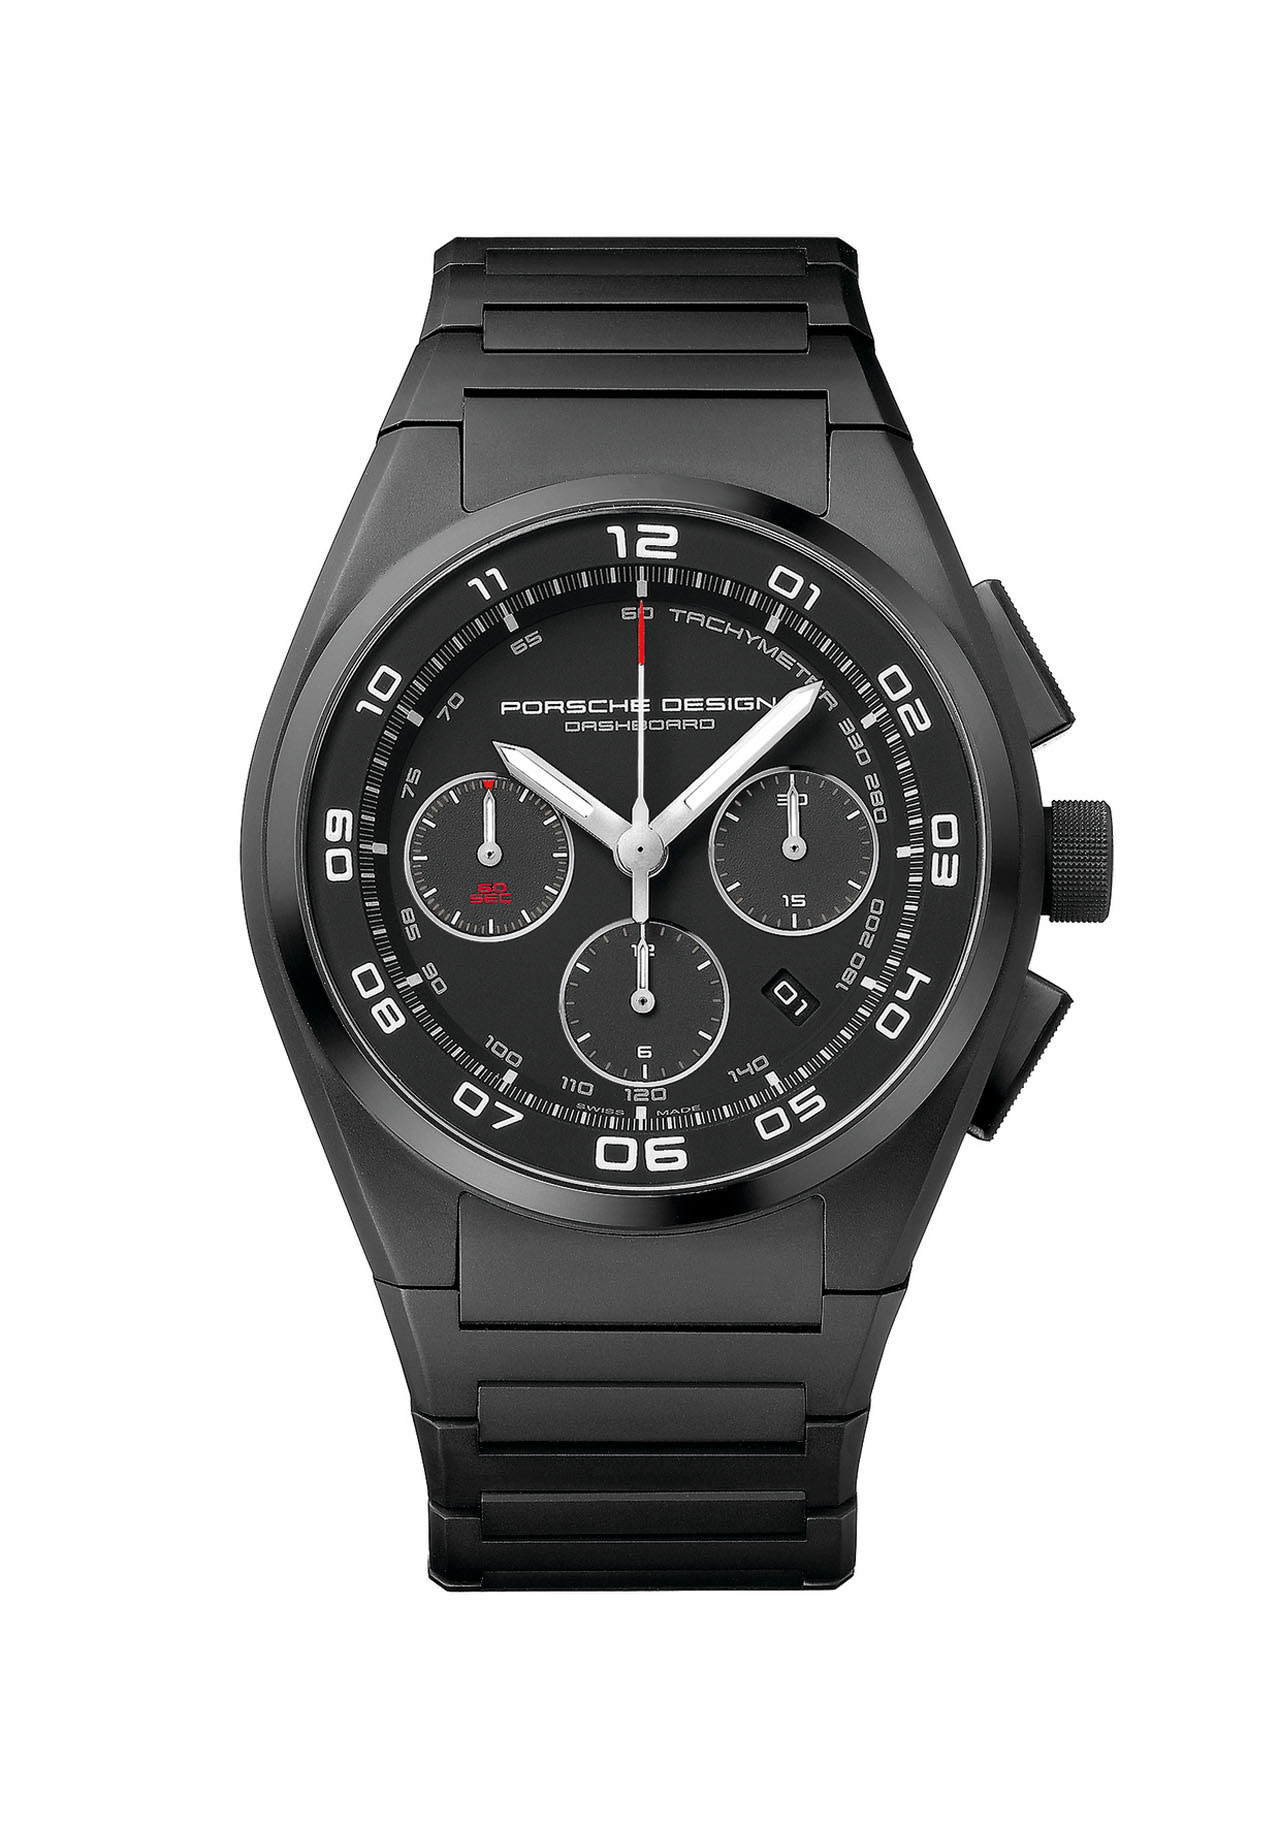 Porsche Design Küchenwaage Porsche Unveils Design P'6620 Dashboard Watch Inspired By